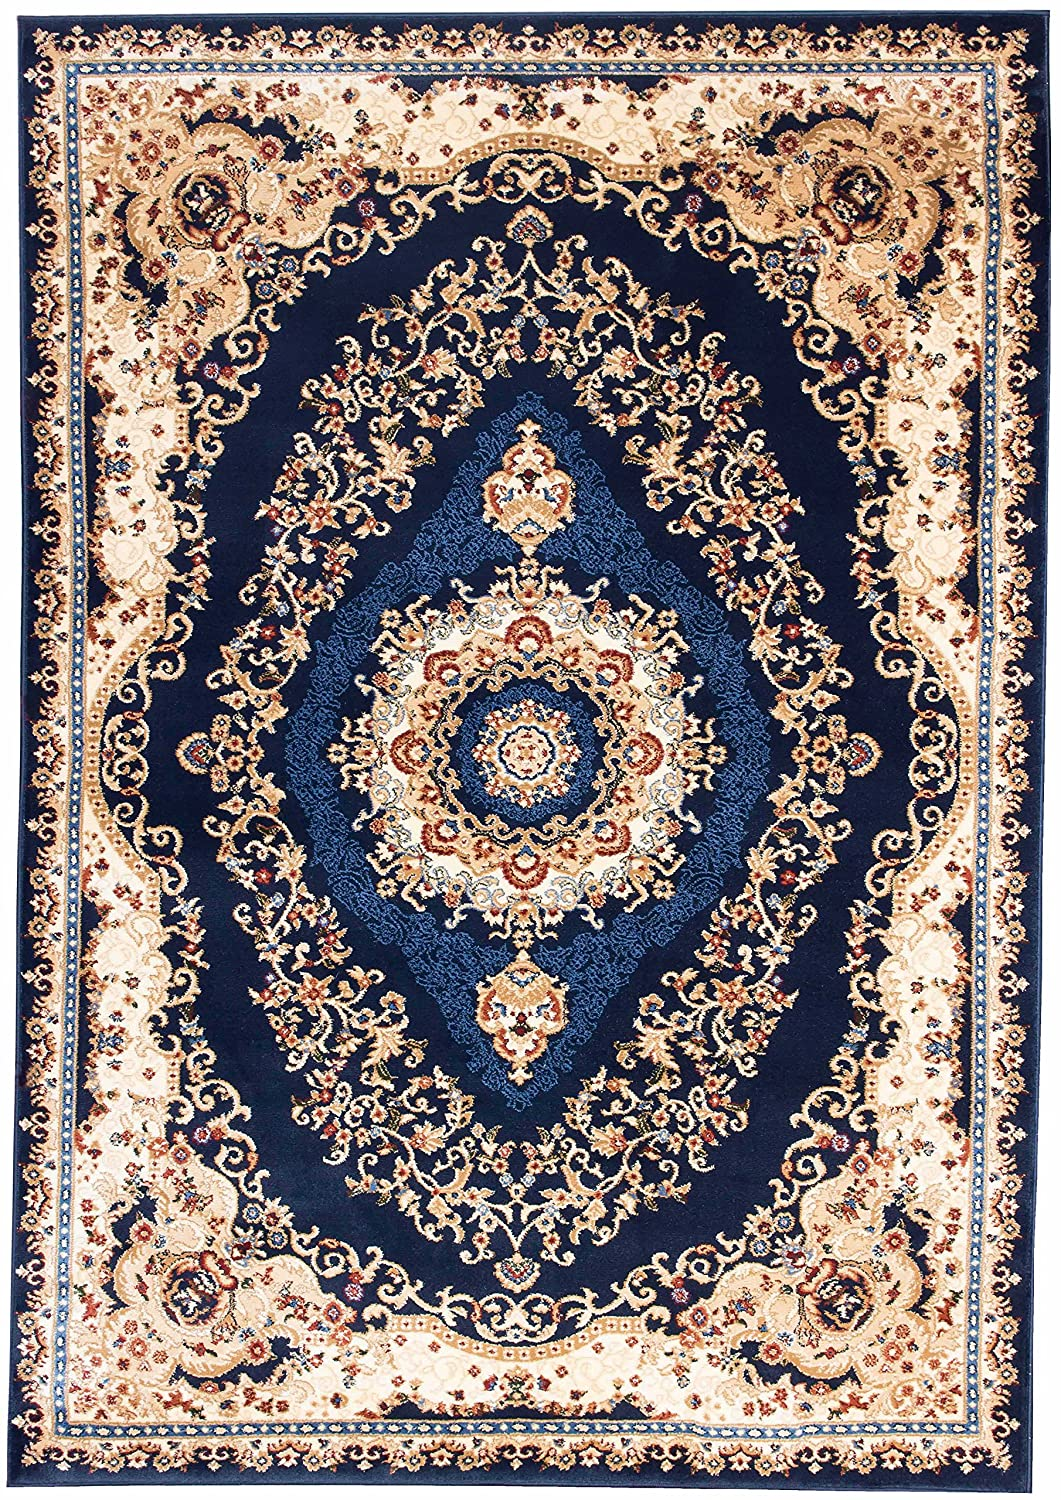 Kerman Royal Turkish Collection Navy Area Rug 3x5 AG Home 04586A_BCV77_NAVY-NAVY 3x5